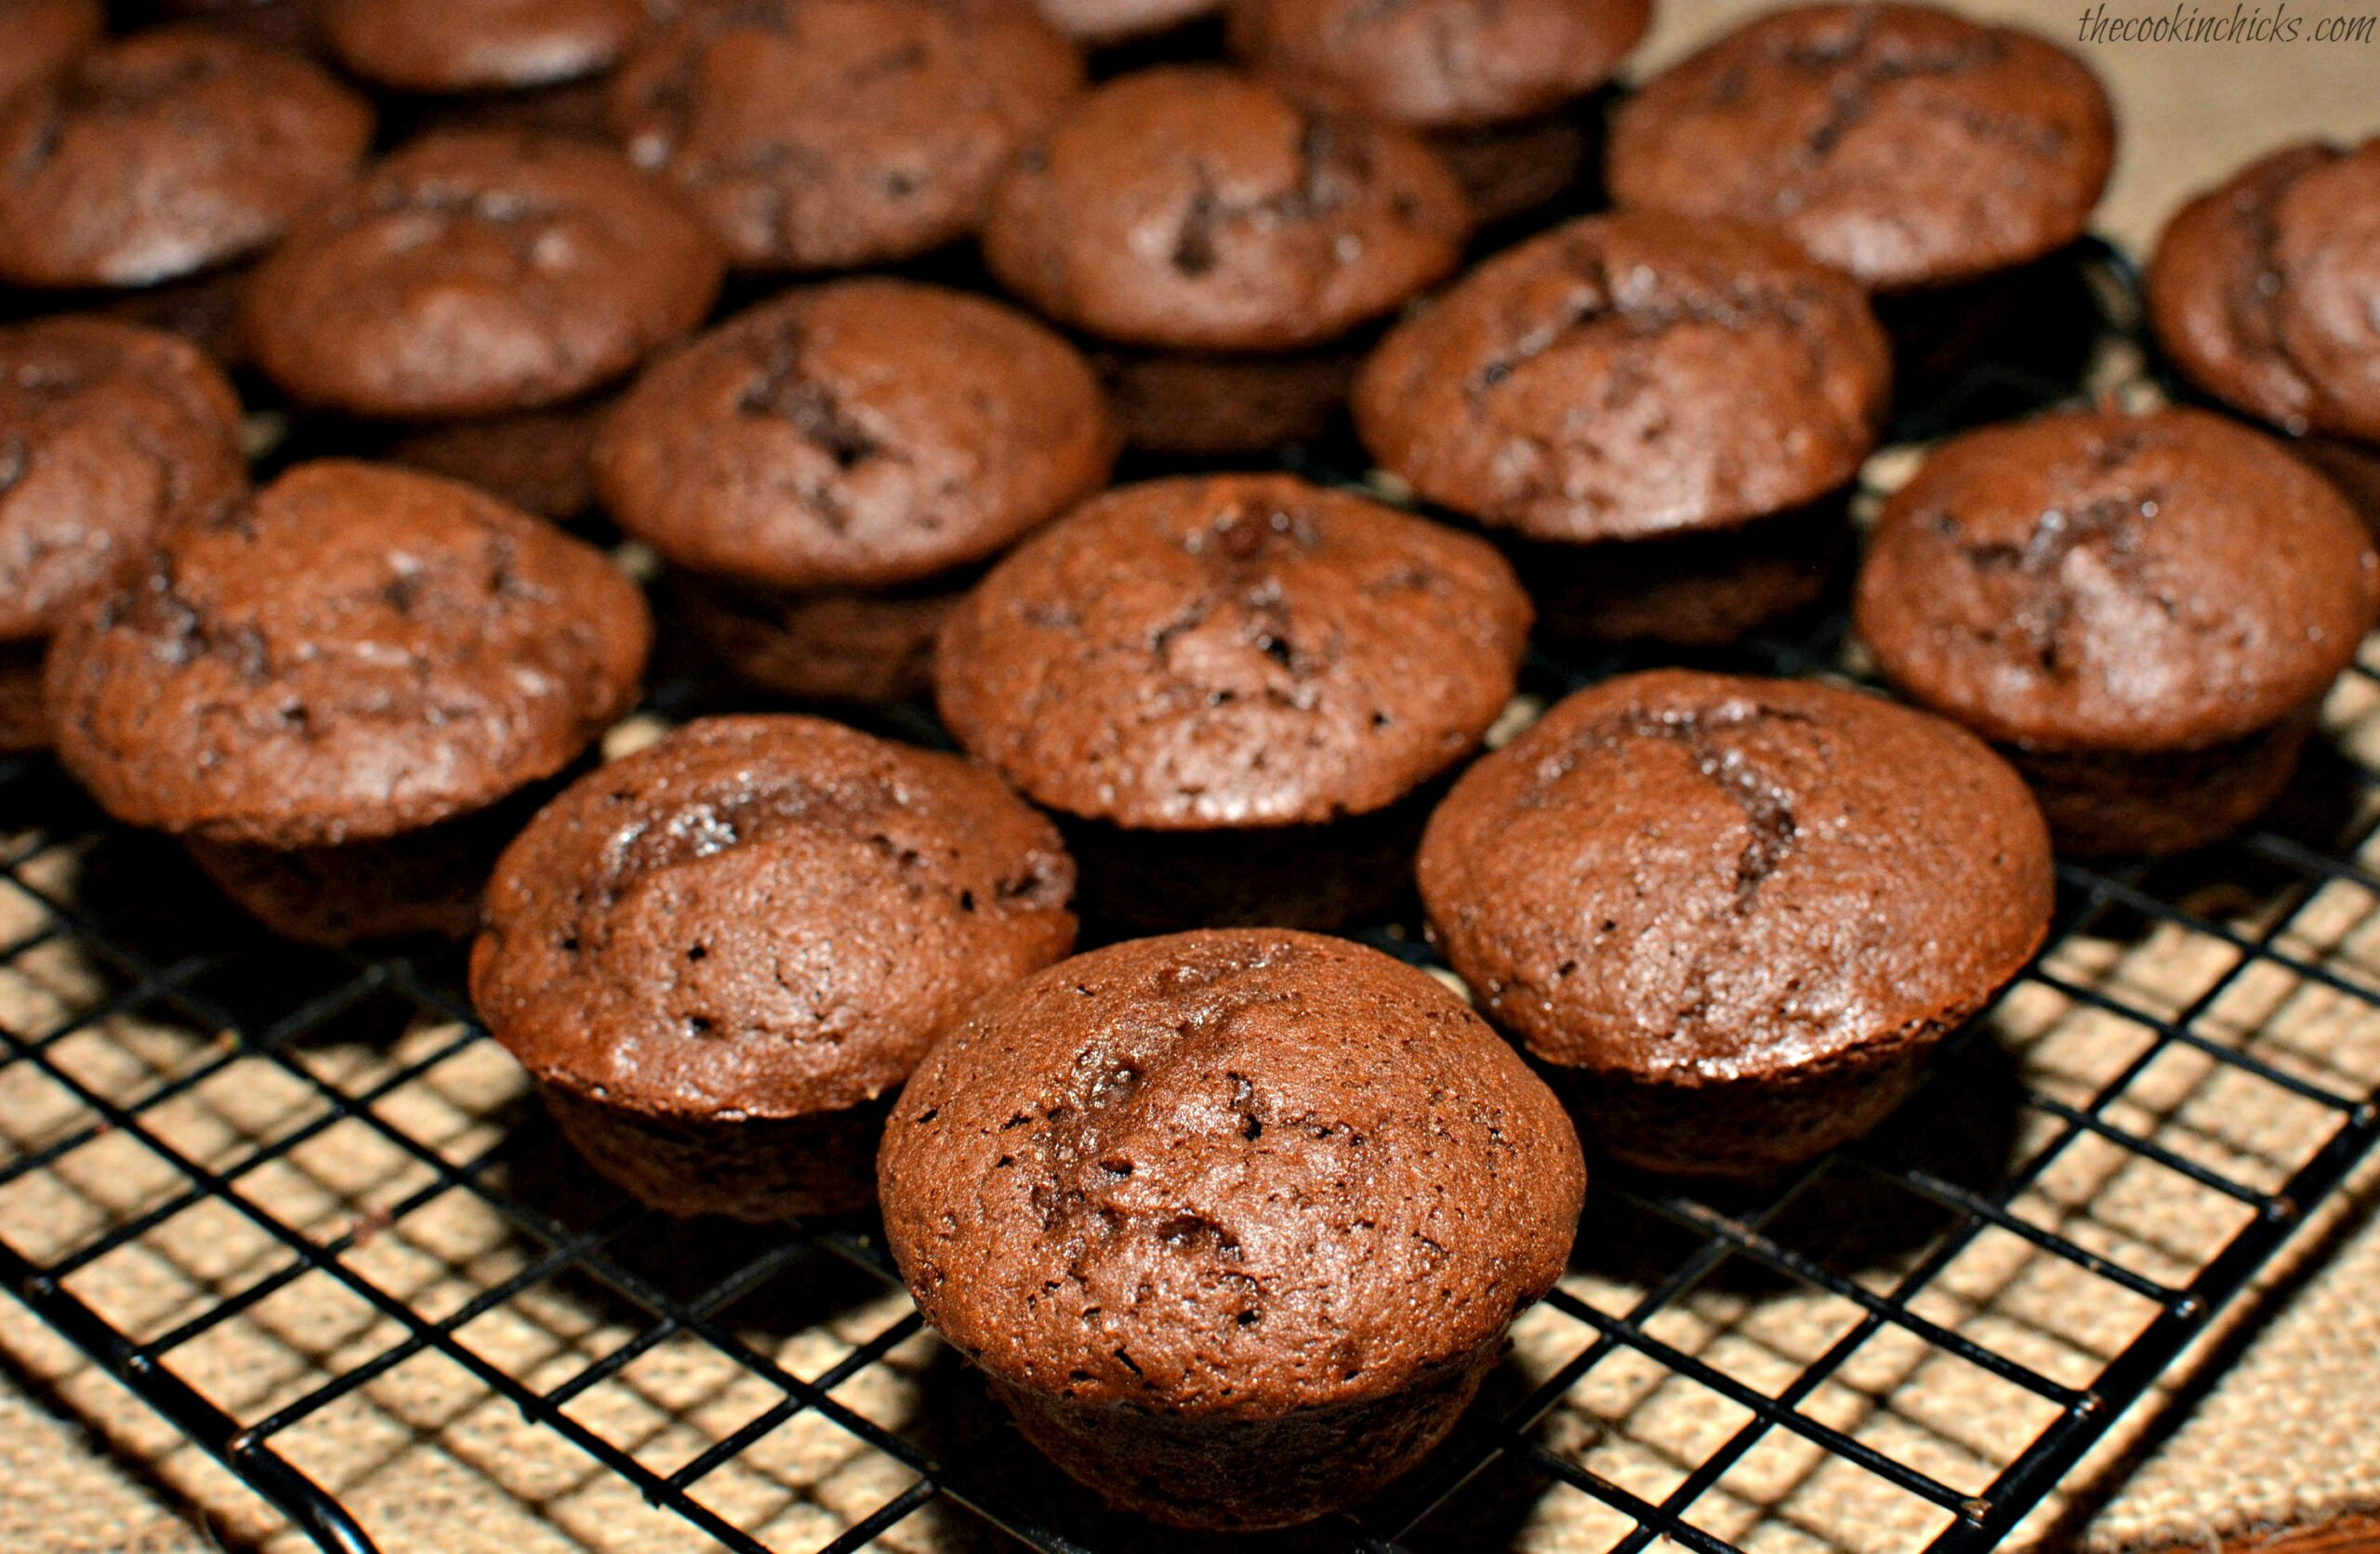 Copycat Costco Chocolate Muffins | The Cookin Chicks